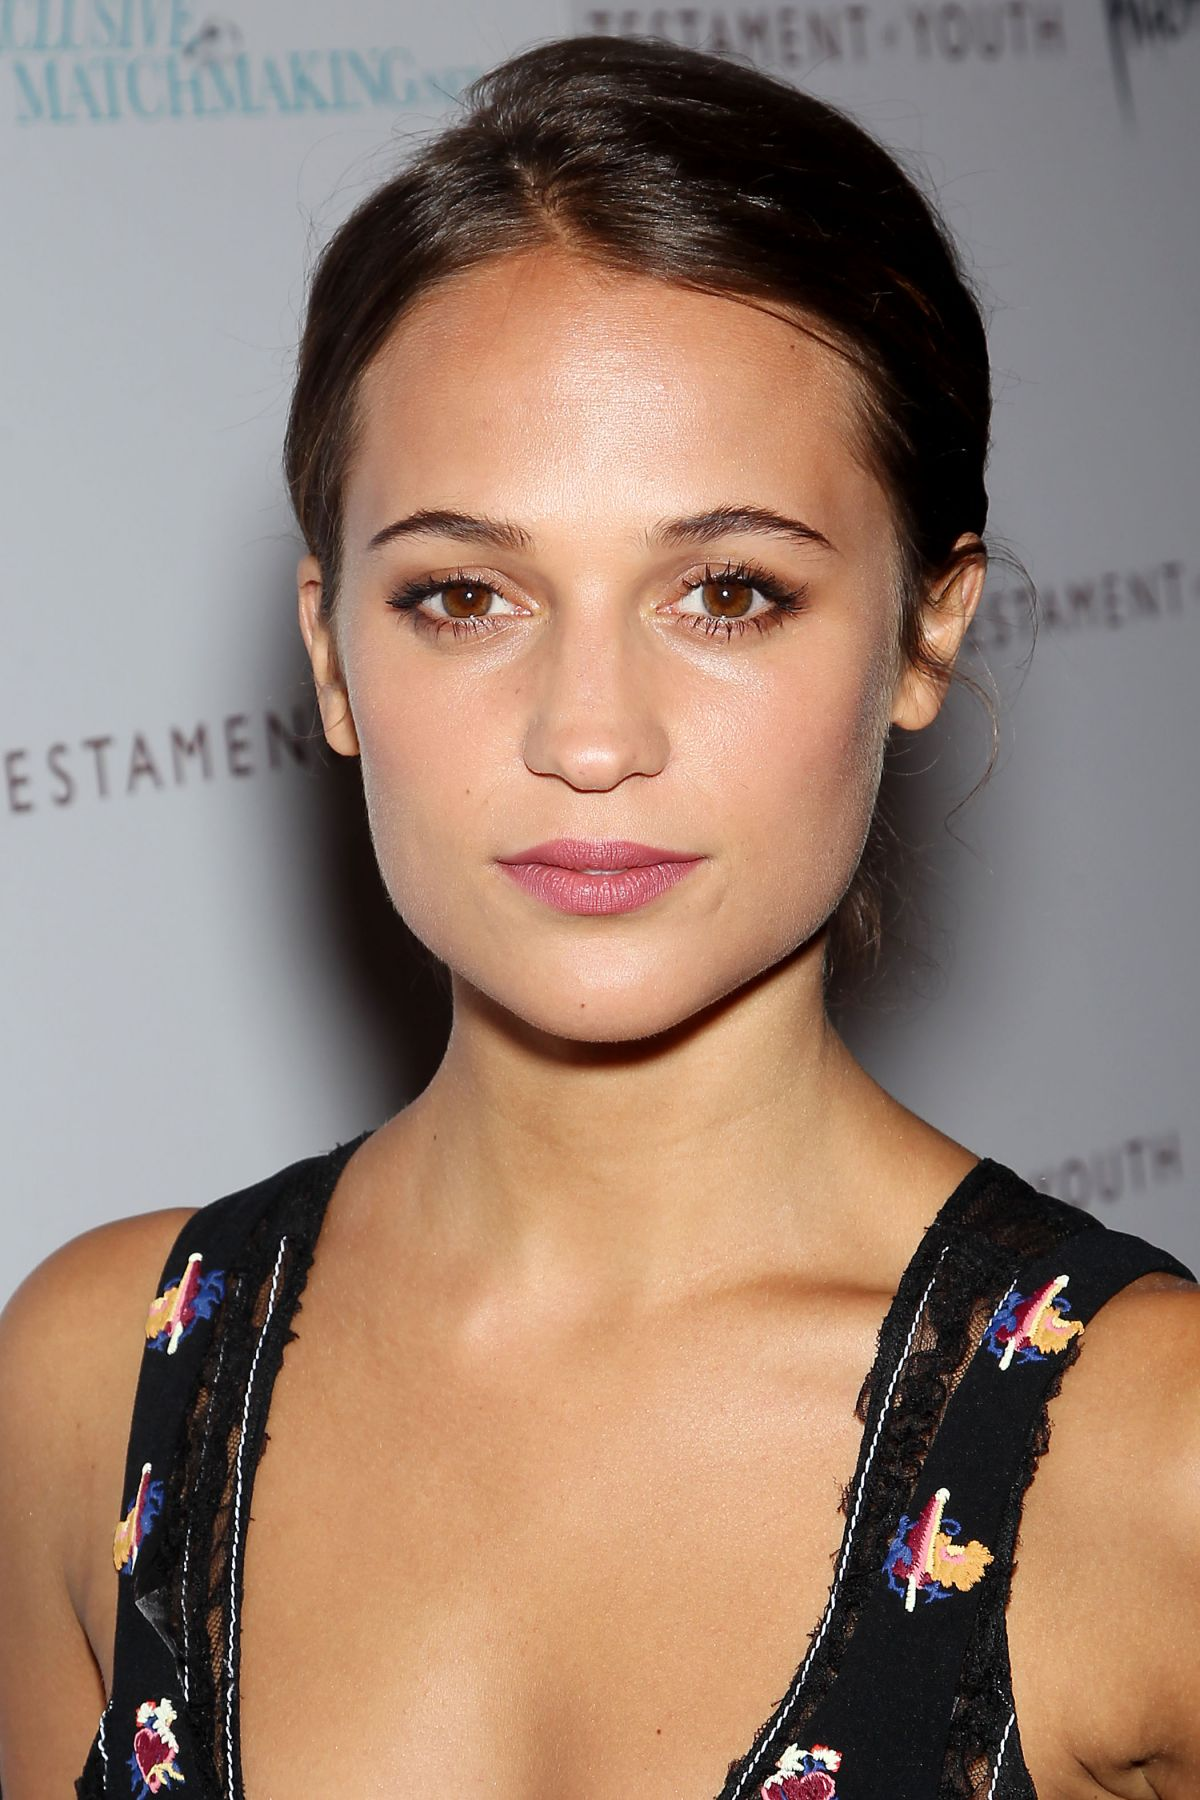 alicia-vikander-at-testament-of-youth-premiere-in-new-york_2